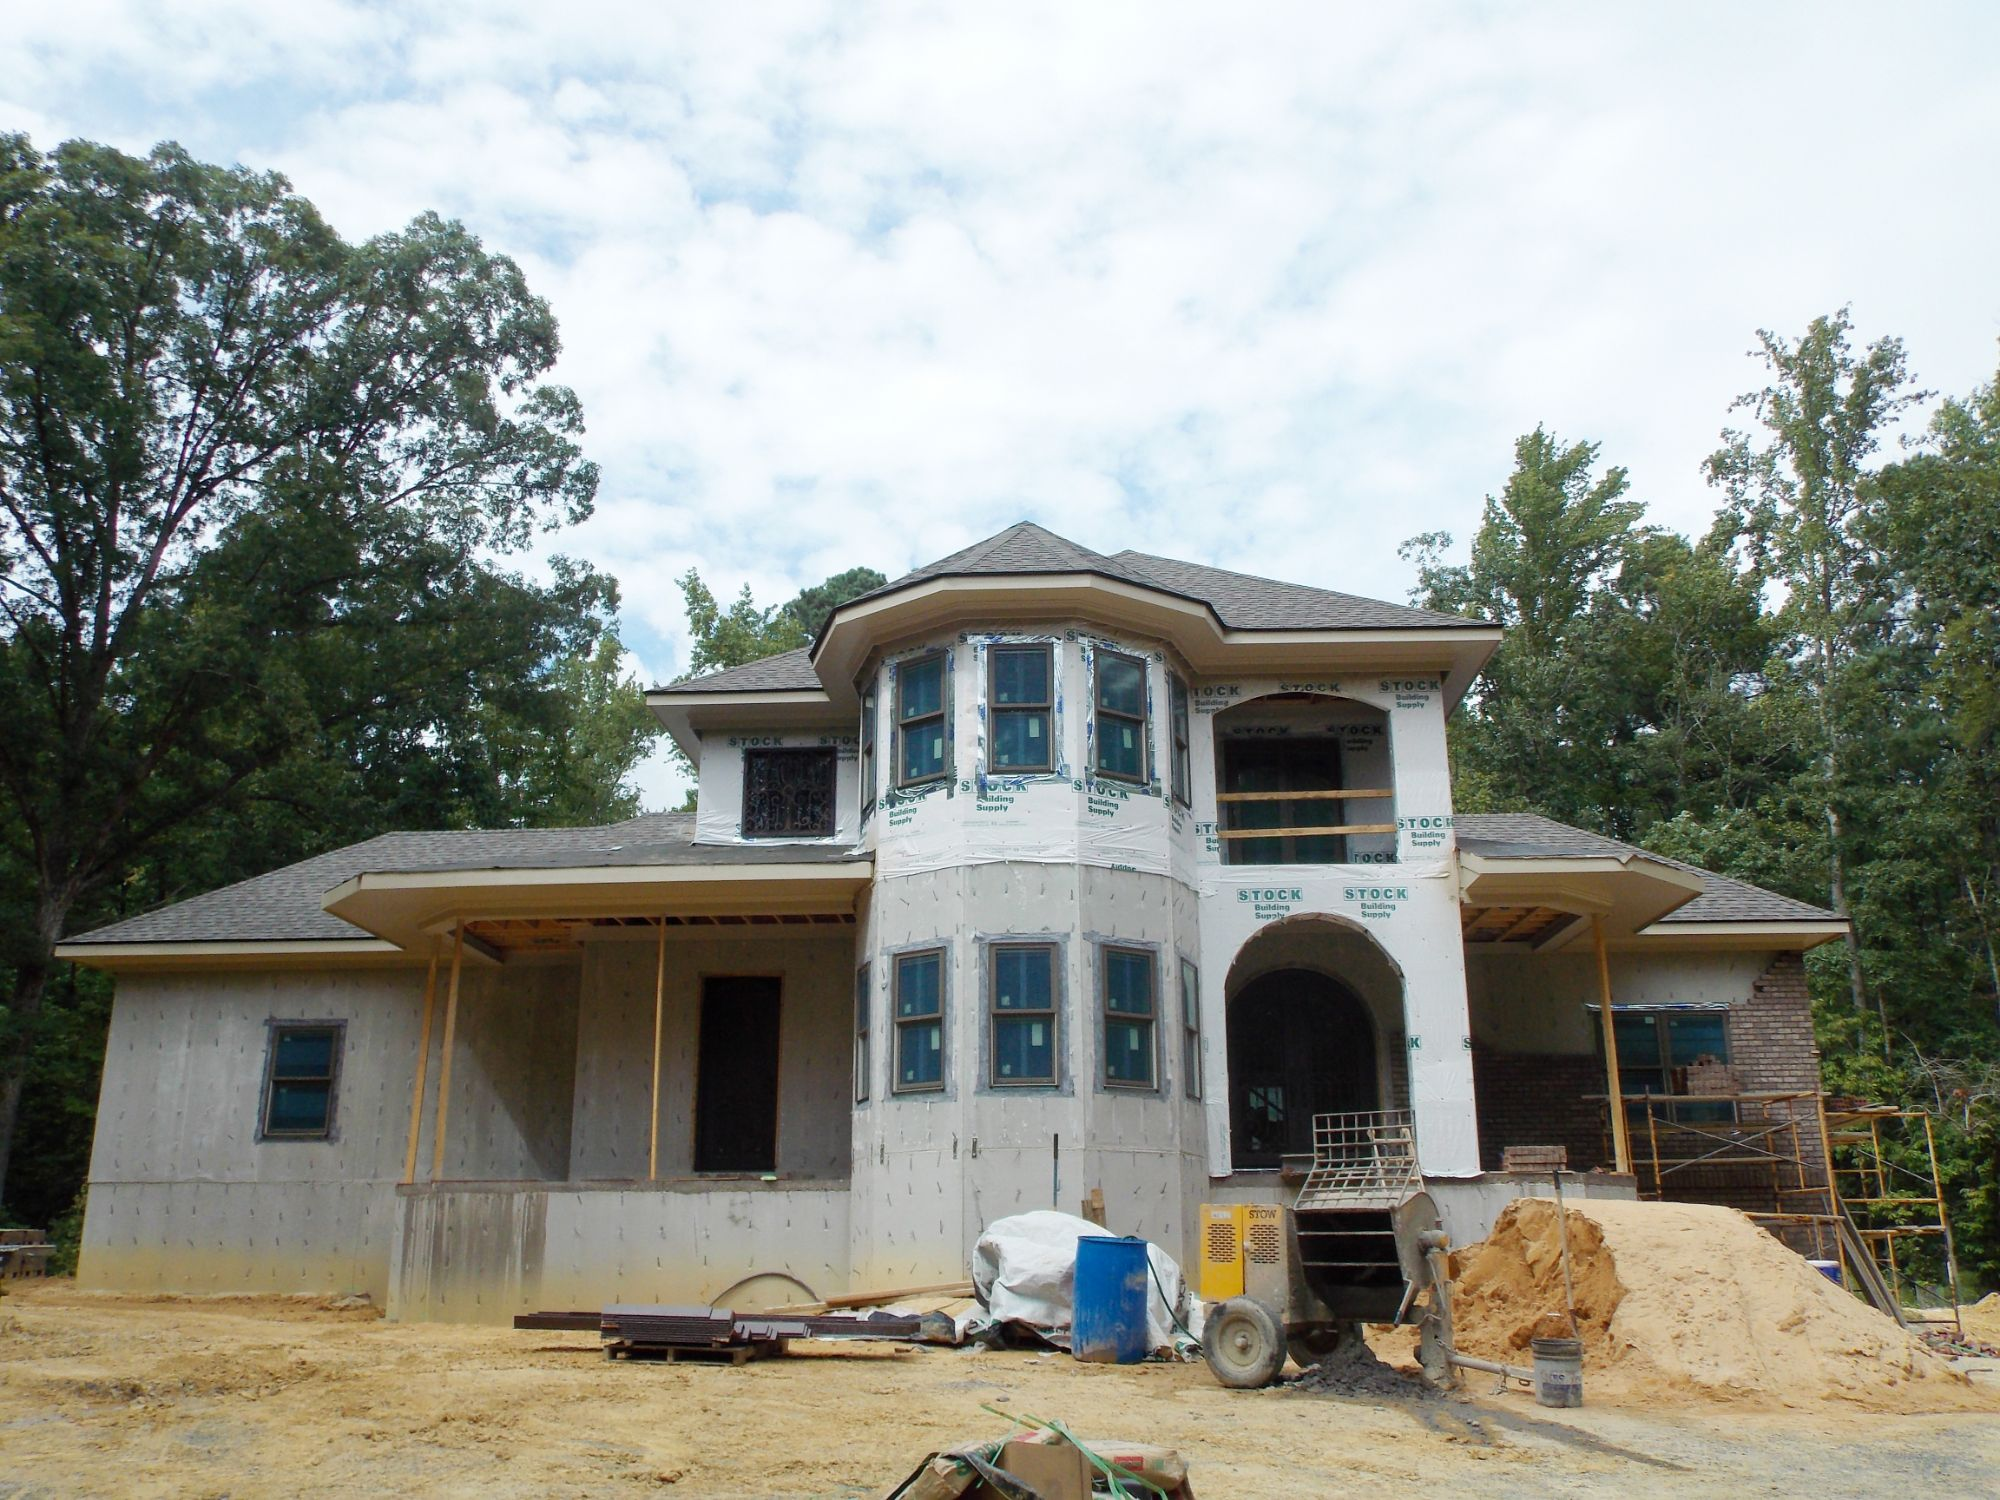 Custom Homes Construction Options and Features /static/media/1.0d767523.jpg